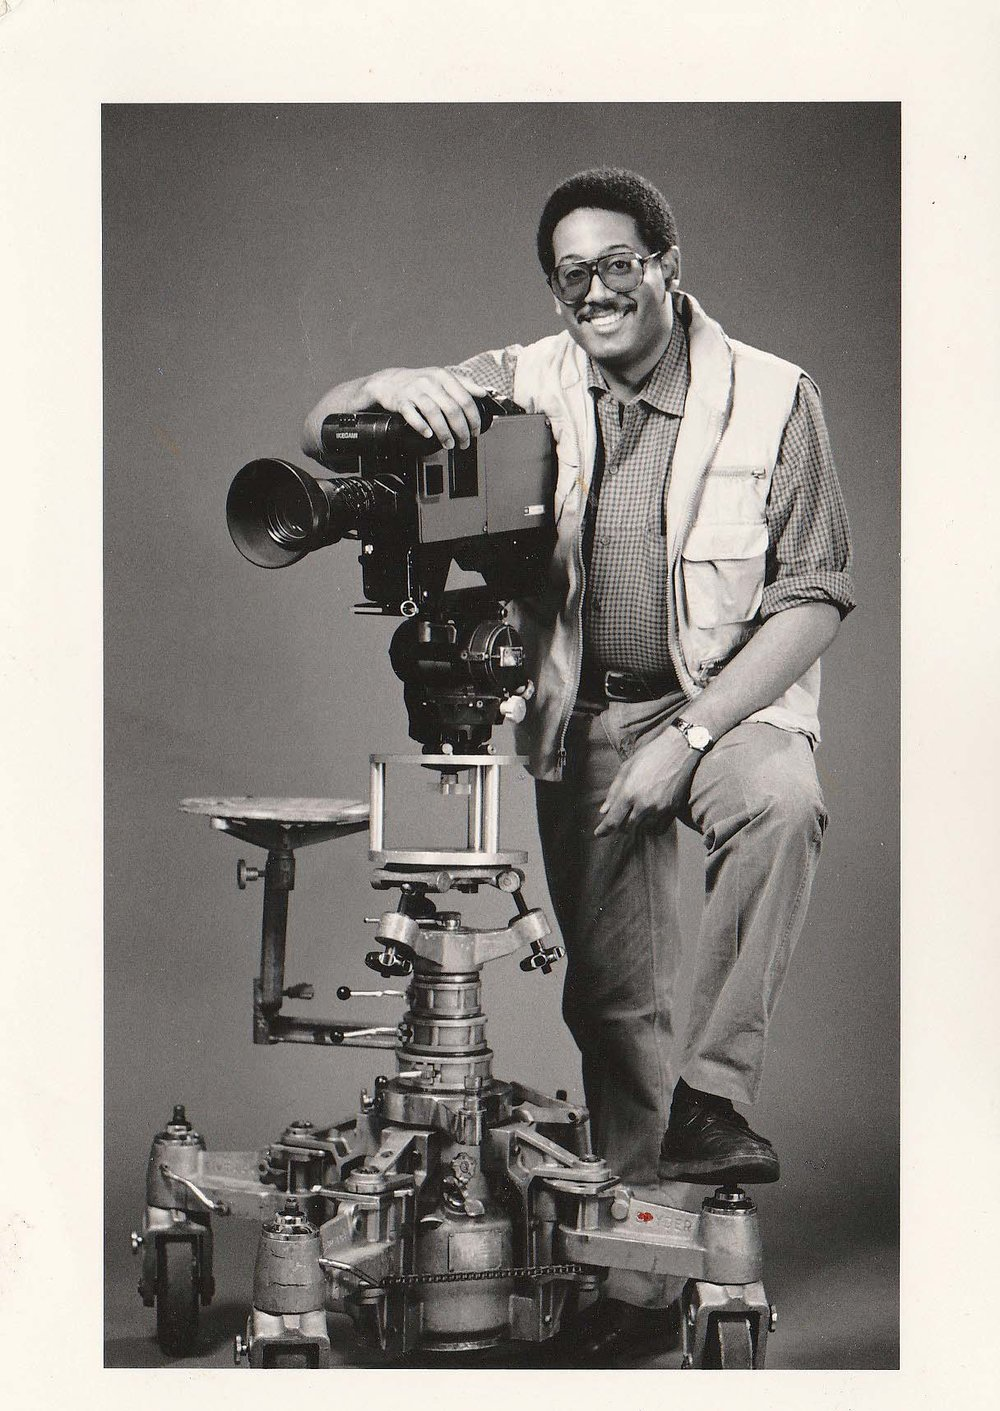 Film producer Tutman 20 years later in a publicity photo. Courtesy of Fred Tutman.